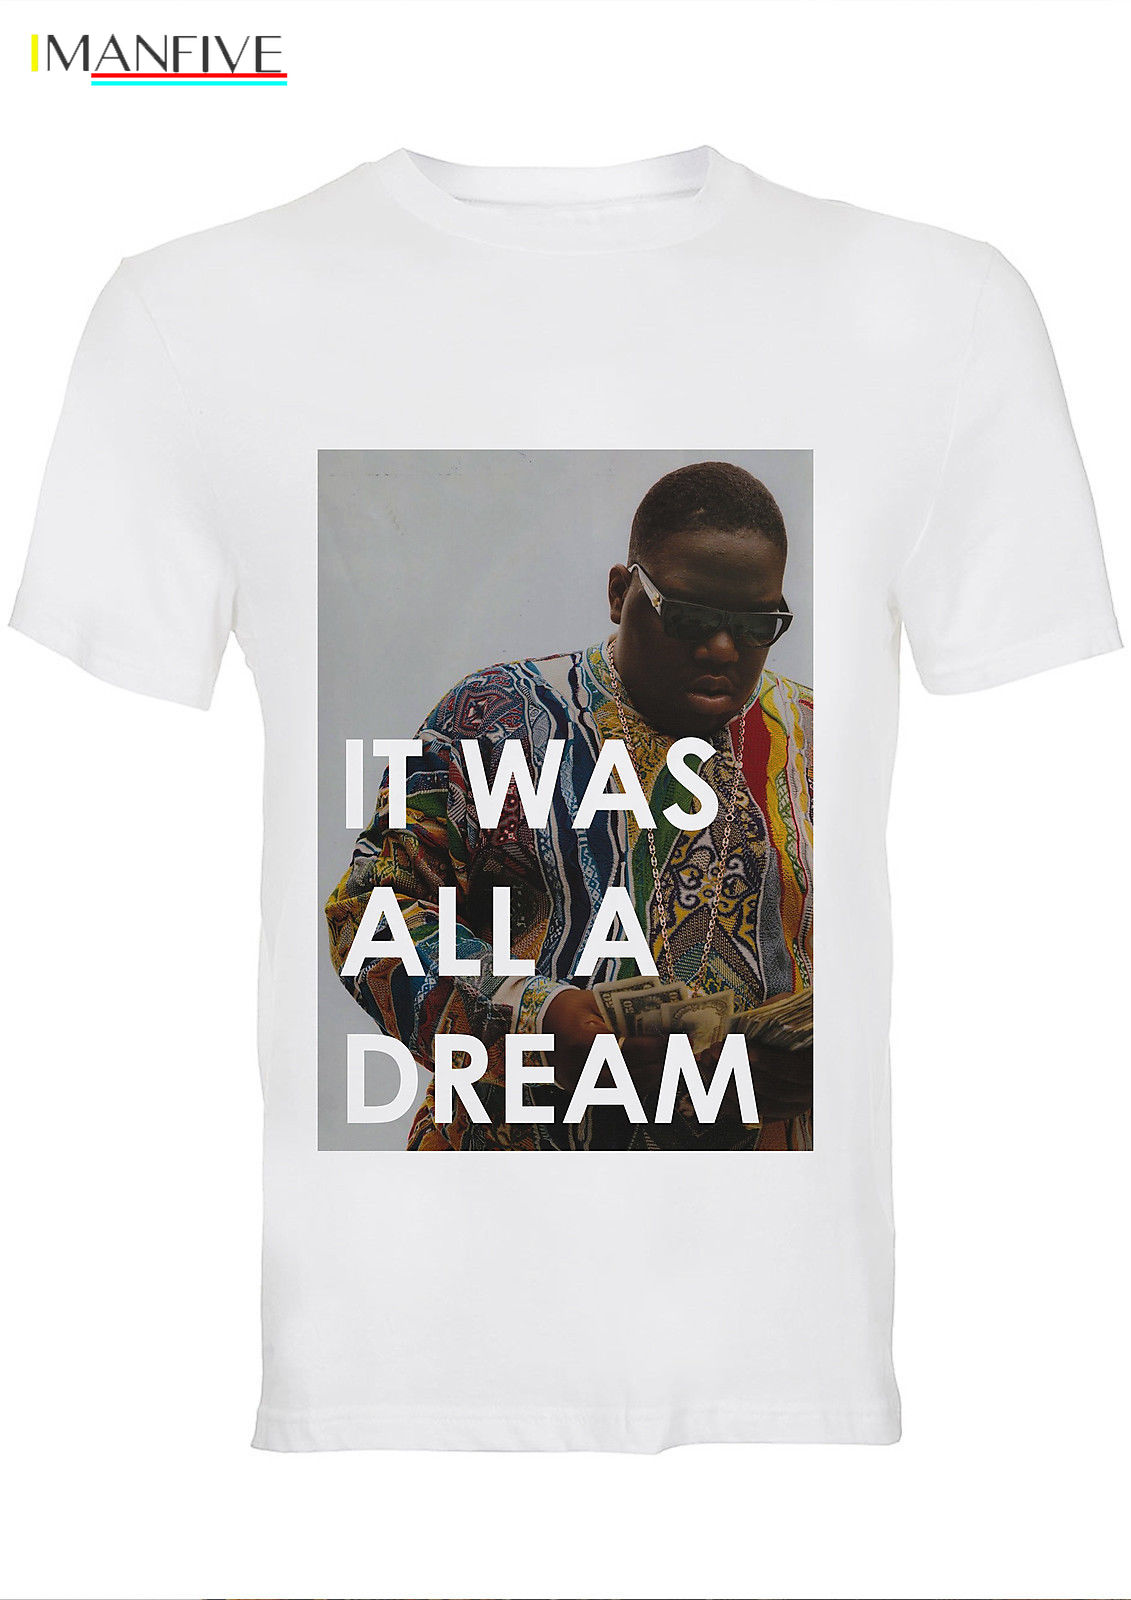 BIG Notorious Biggie It Was All A Dream Cotton Crew Neck T-Shirt / 46_MTSF T Shirt Discount 100 % Cotton T Shirt For Men'S